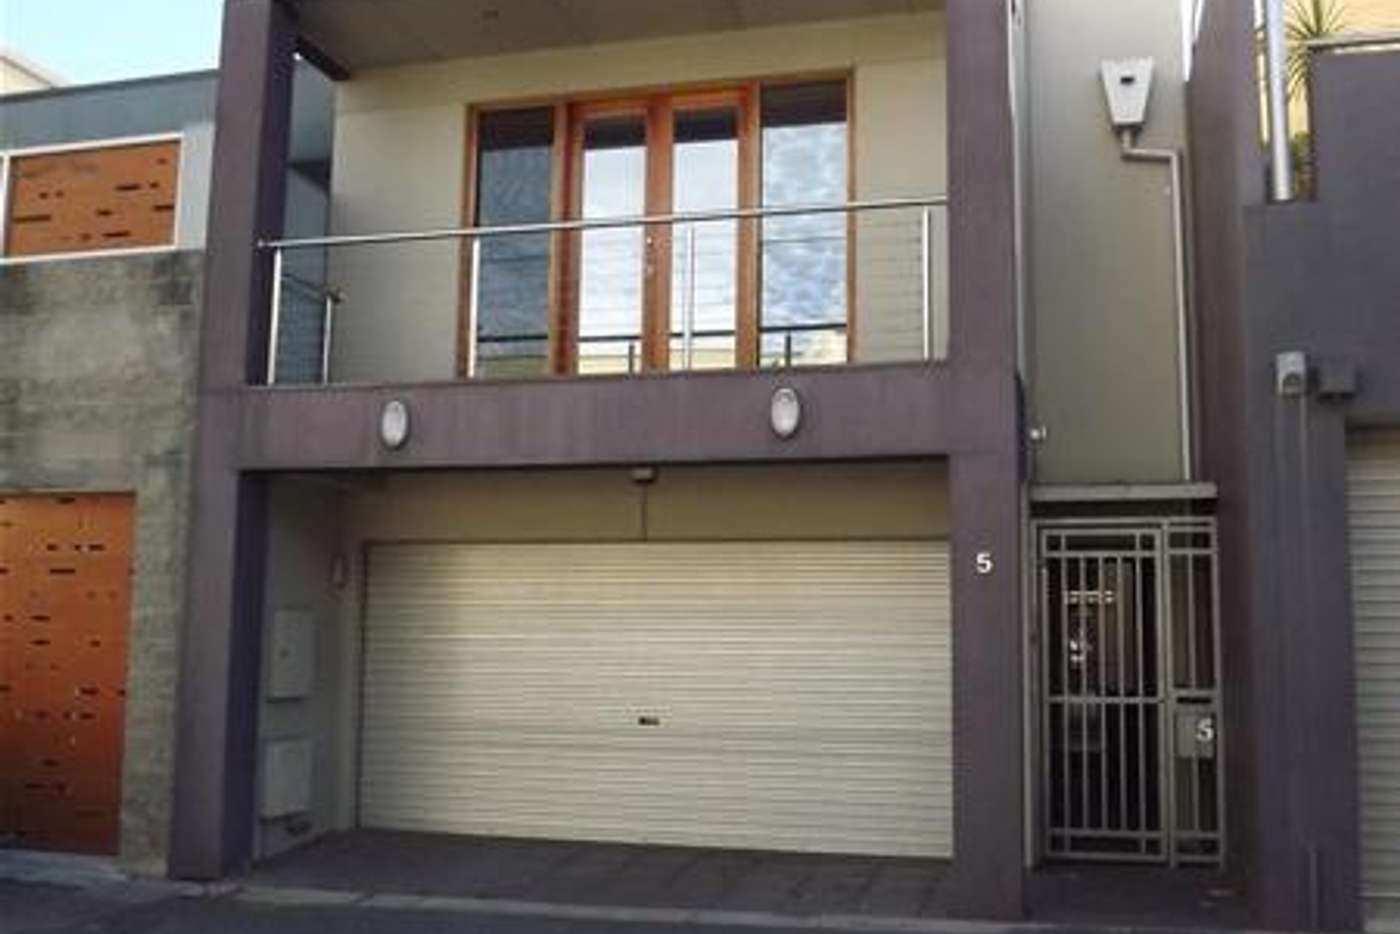 Main view of Homely house listing, 5 Draper Mews, Adelaide SA 5000